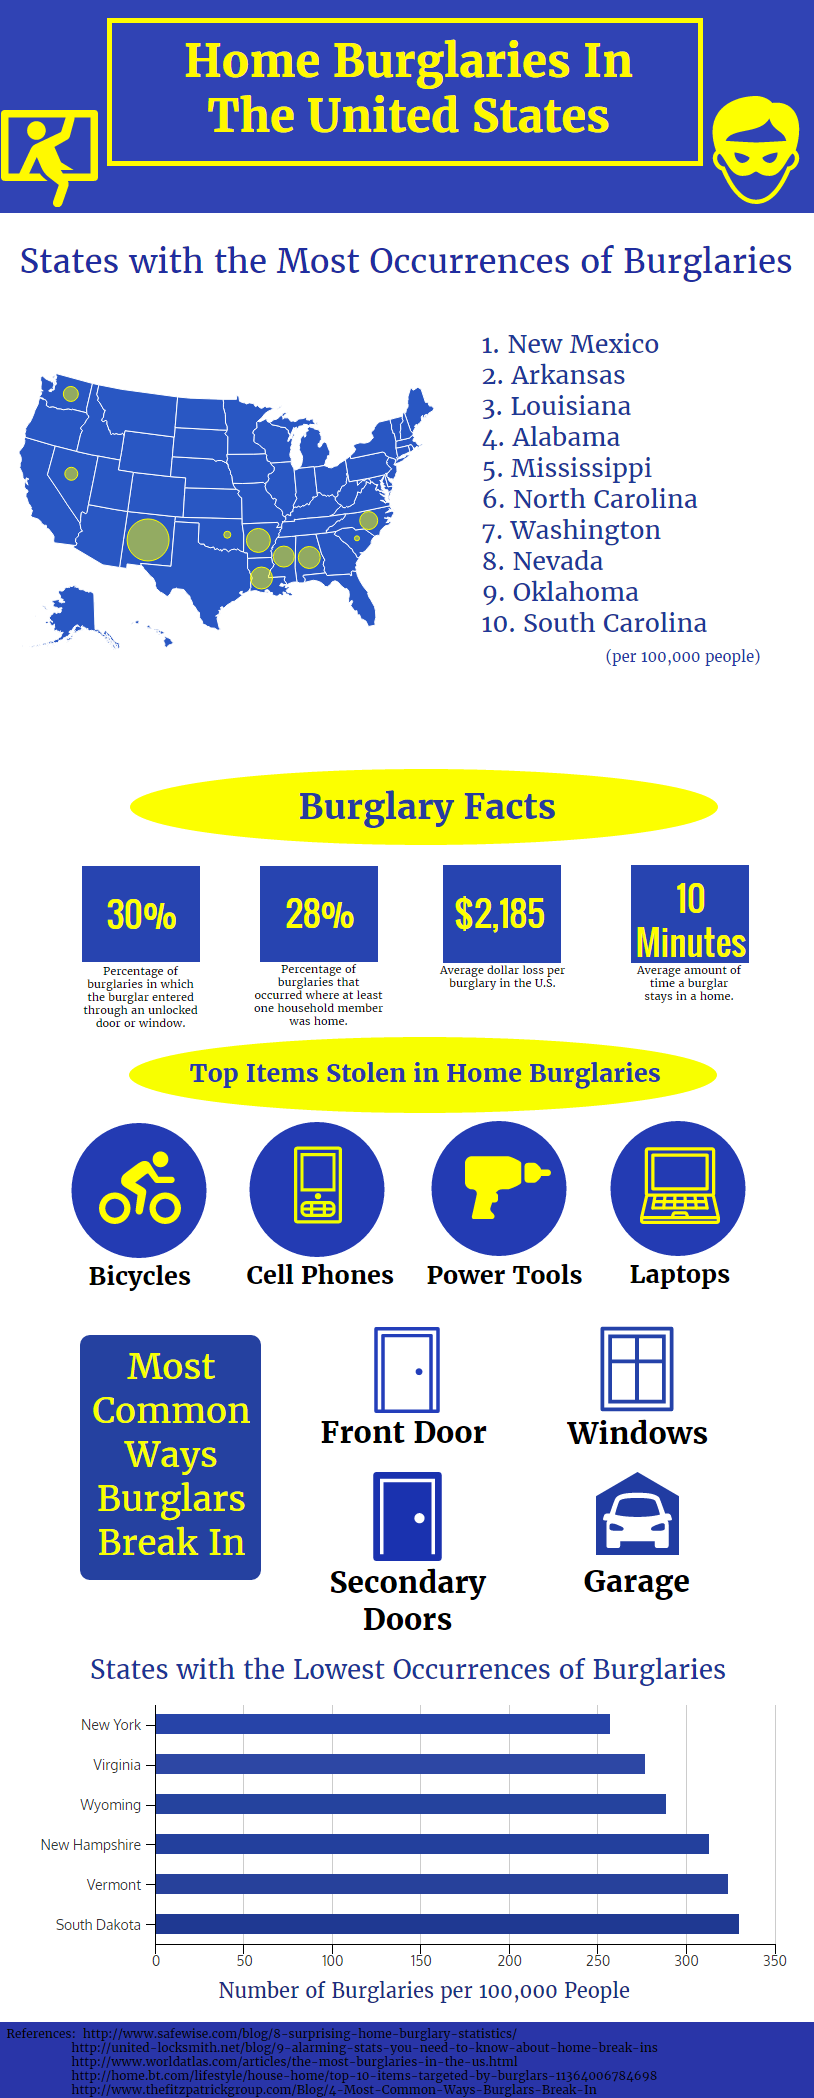 Wallside Windows Home Burglary Infographic